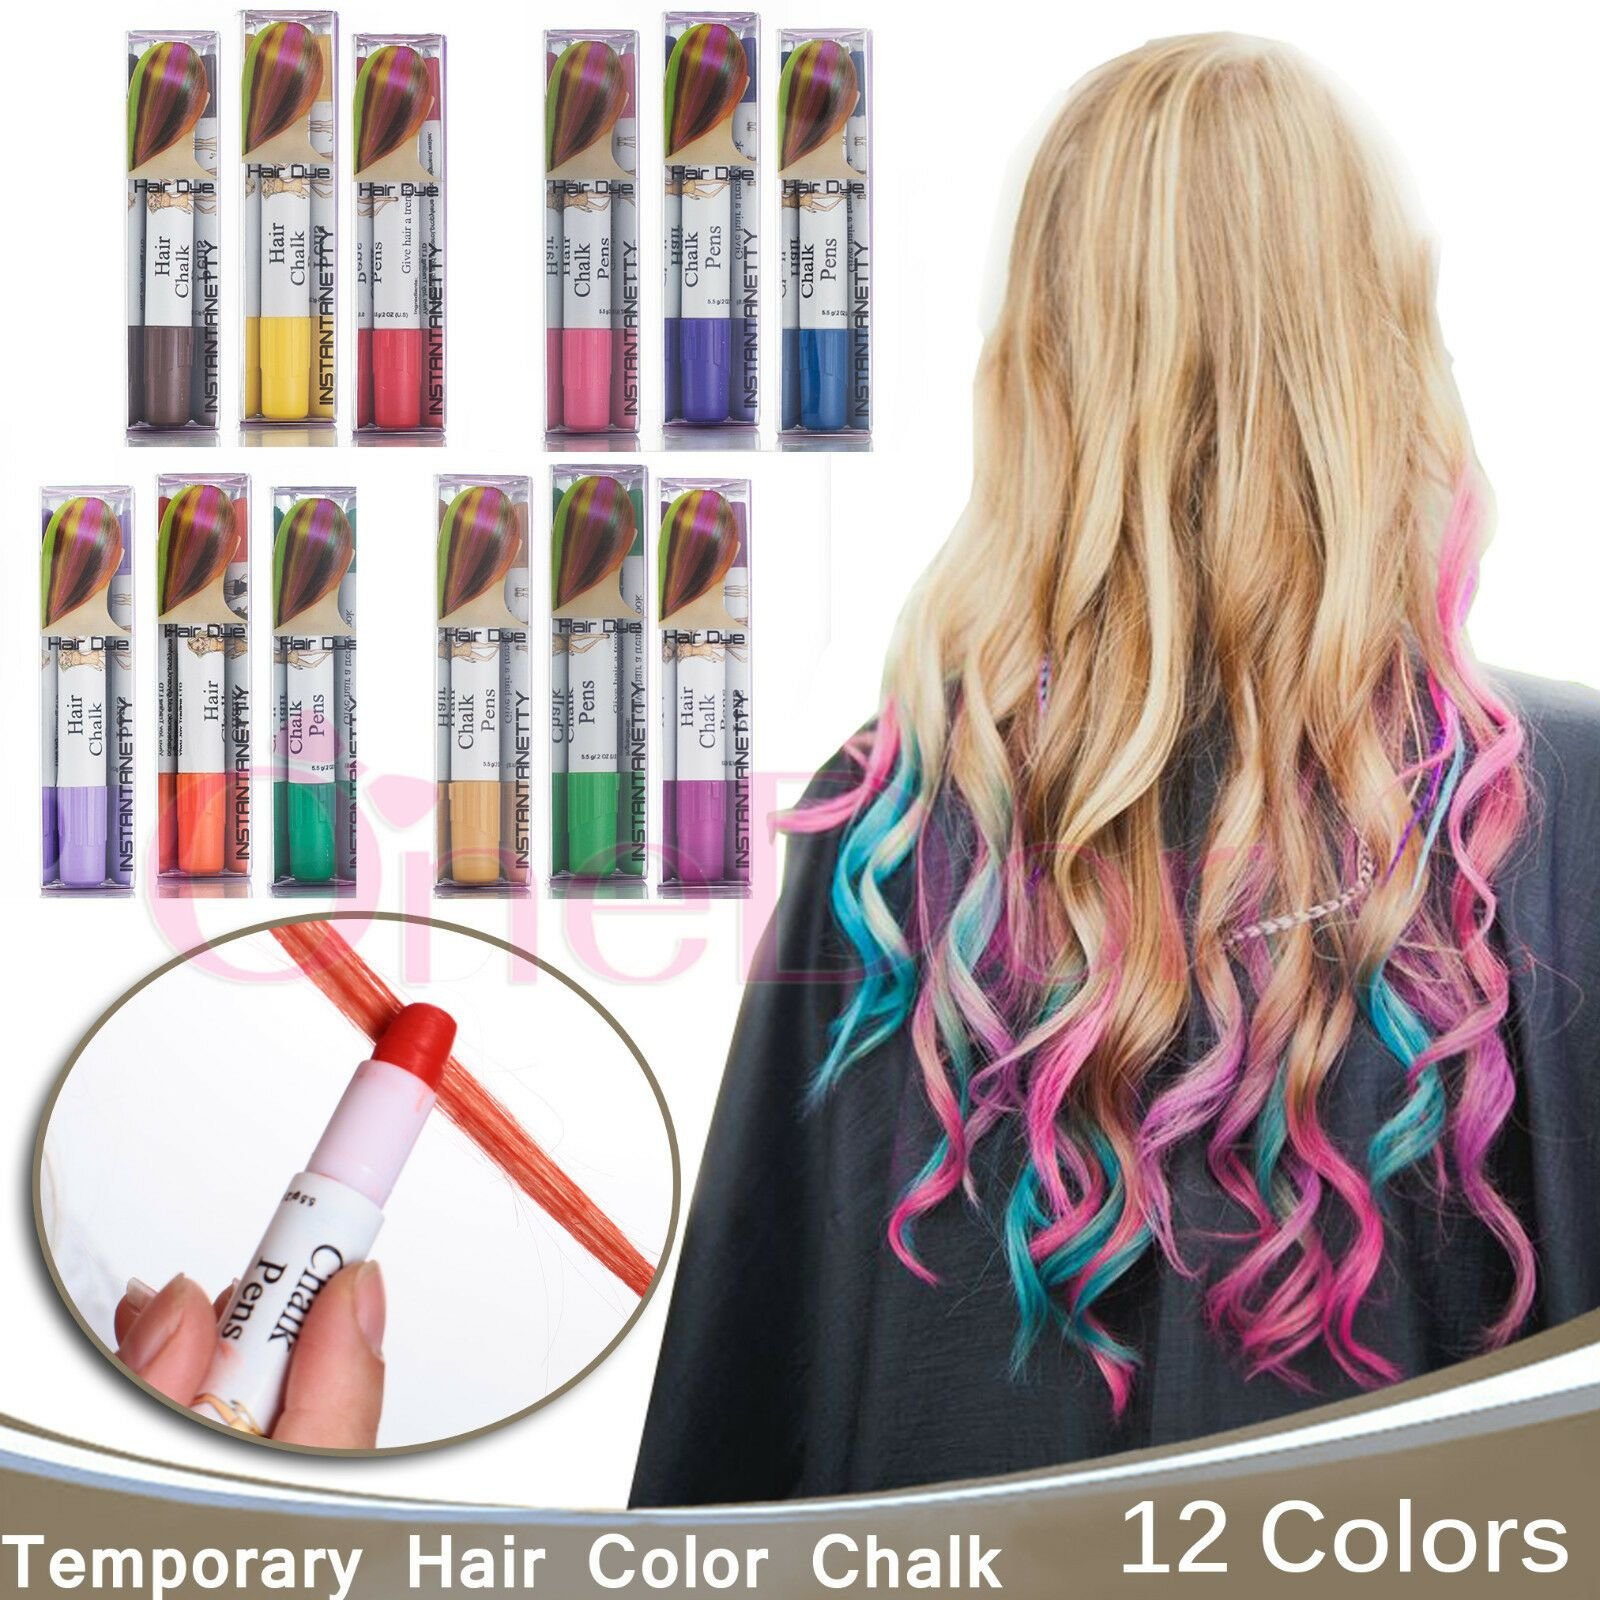 The Best Professional Temporary Hair Dye Hair Color Chalk Pens Pictures